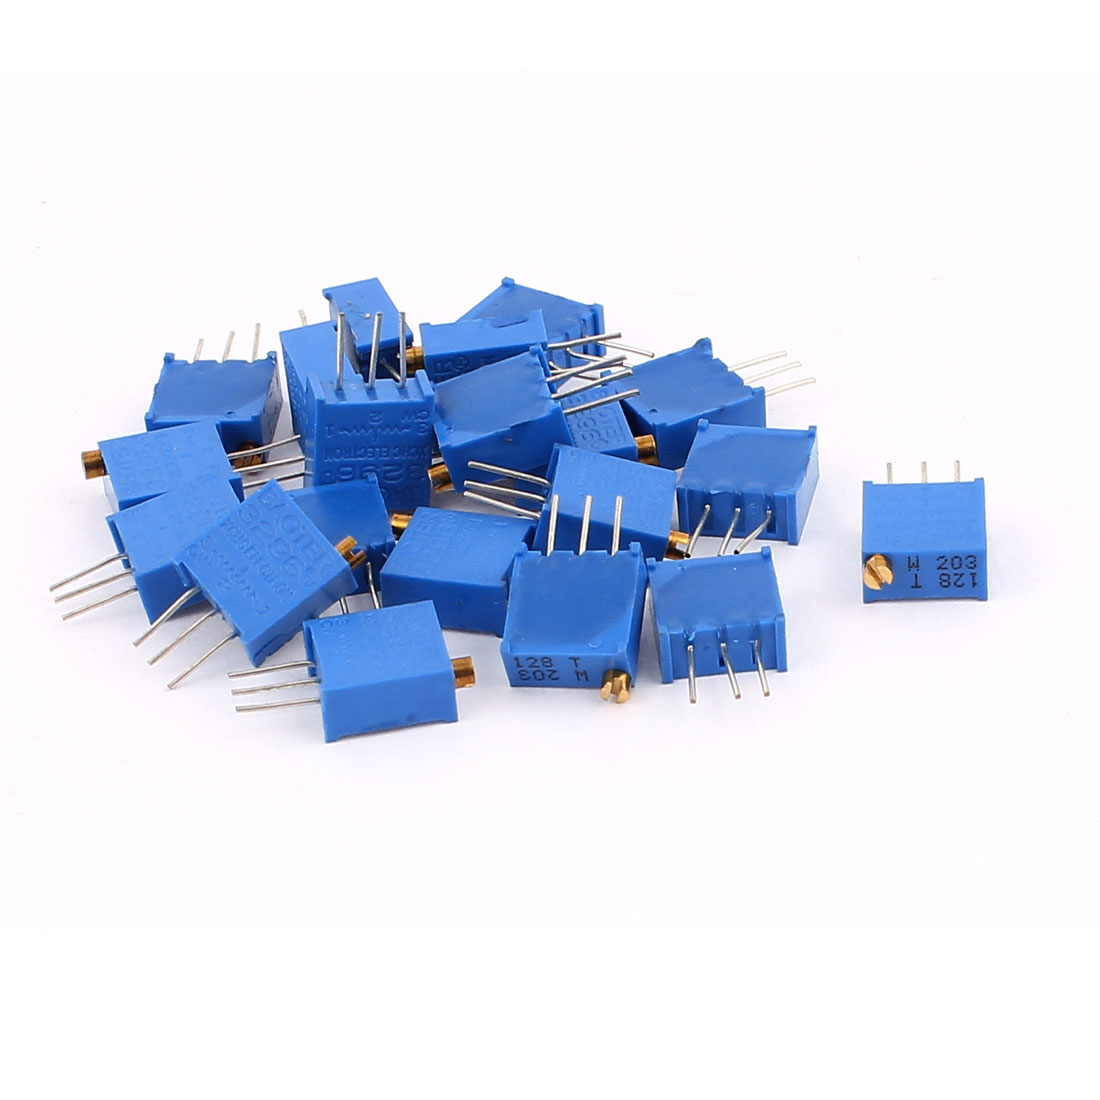 20 Pcs 3296W 20K ohm Variable Resistor Adjustable Resistance for Multiturn Potentiometer